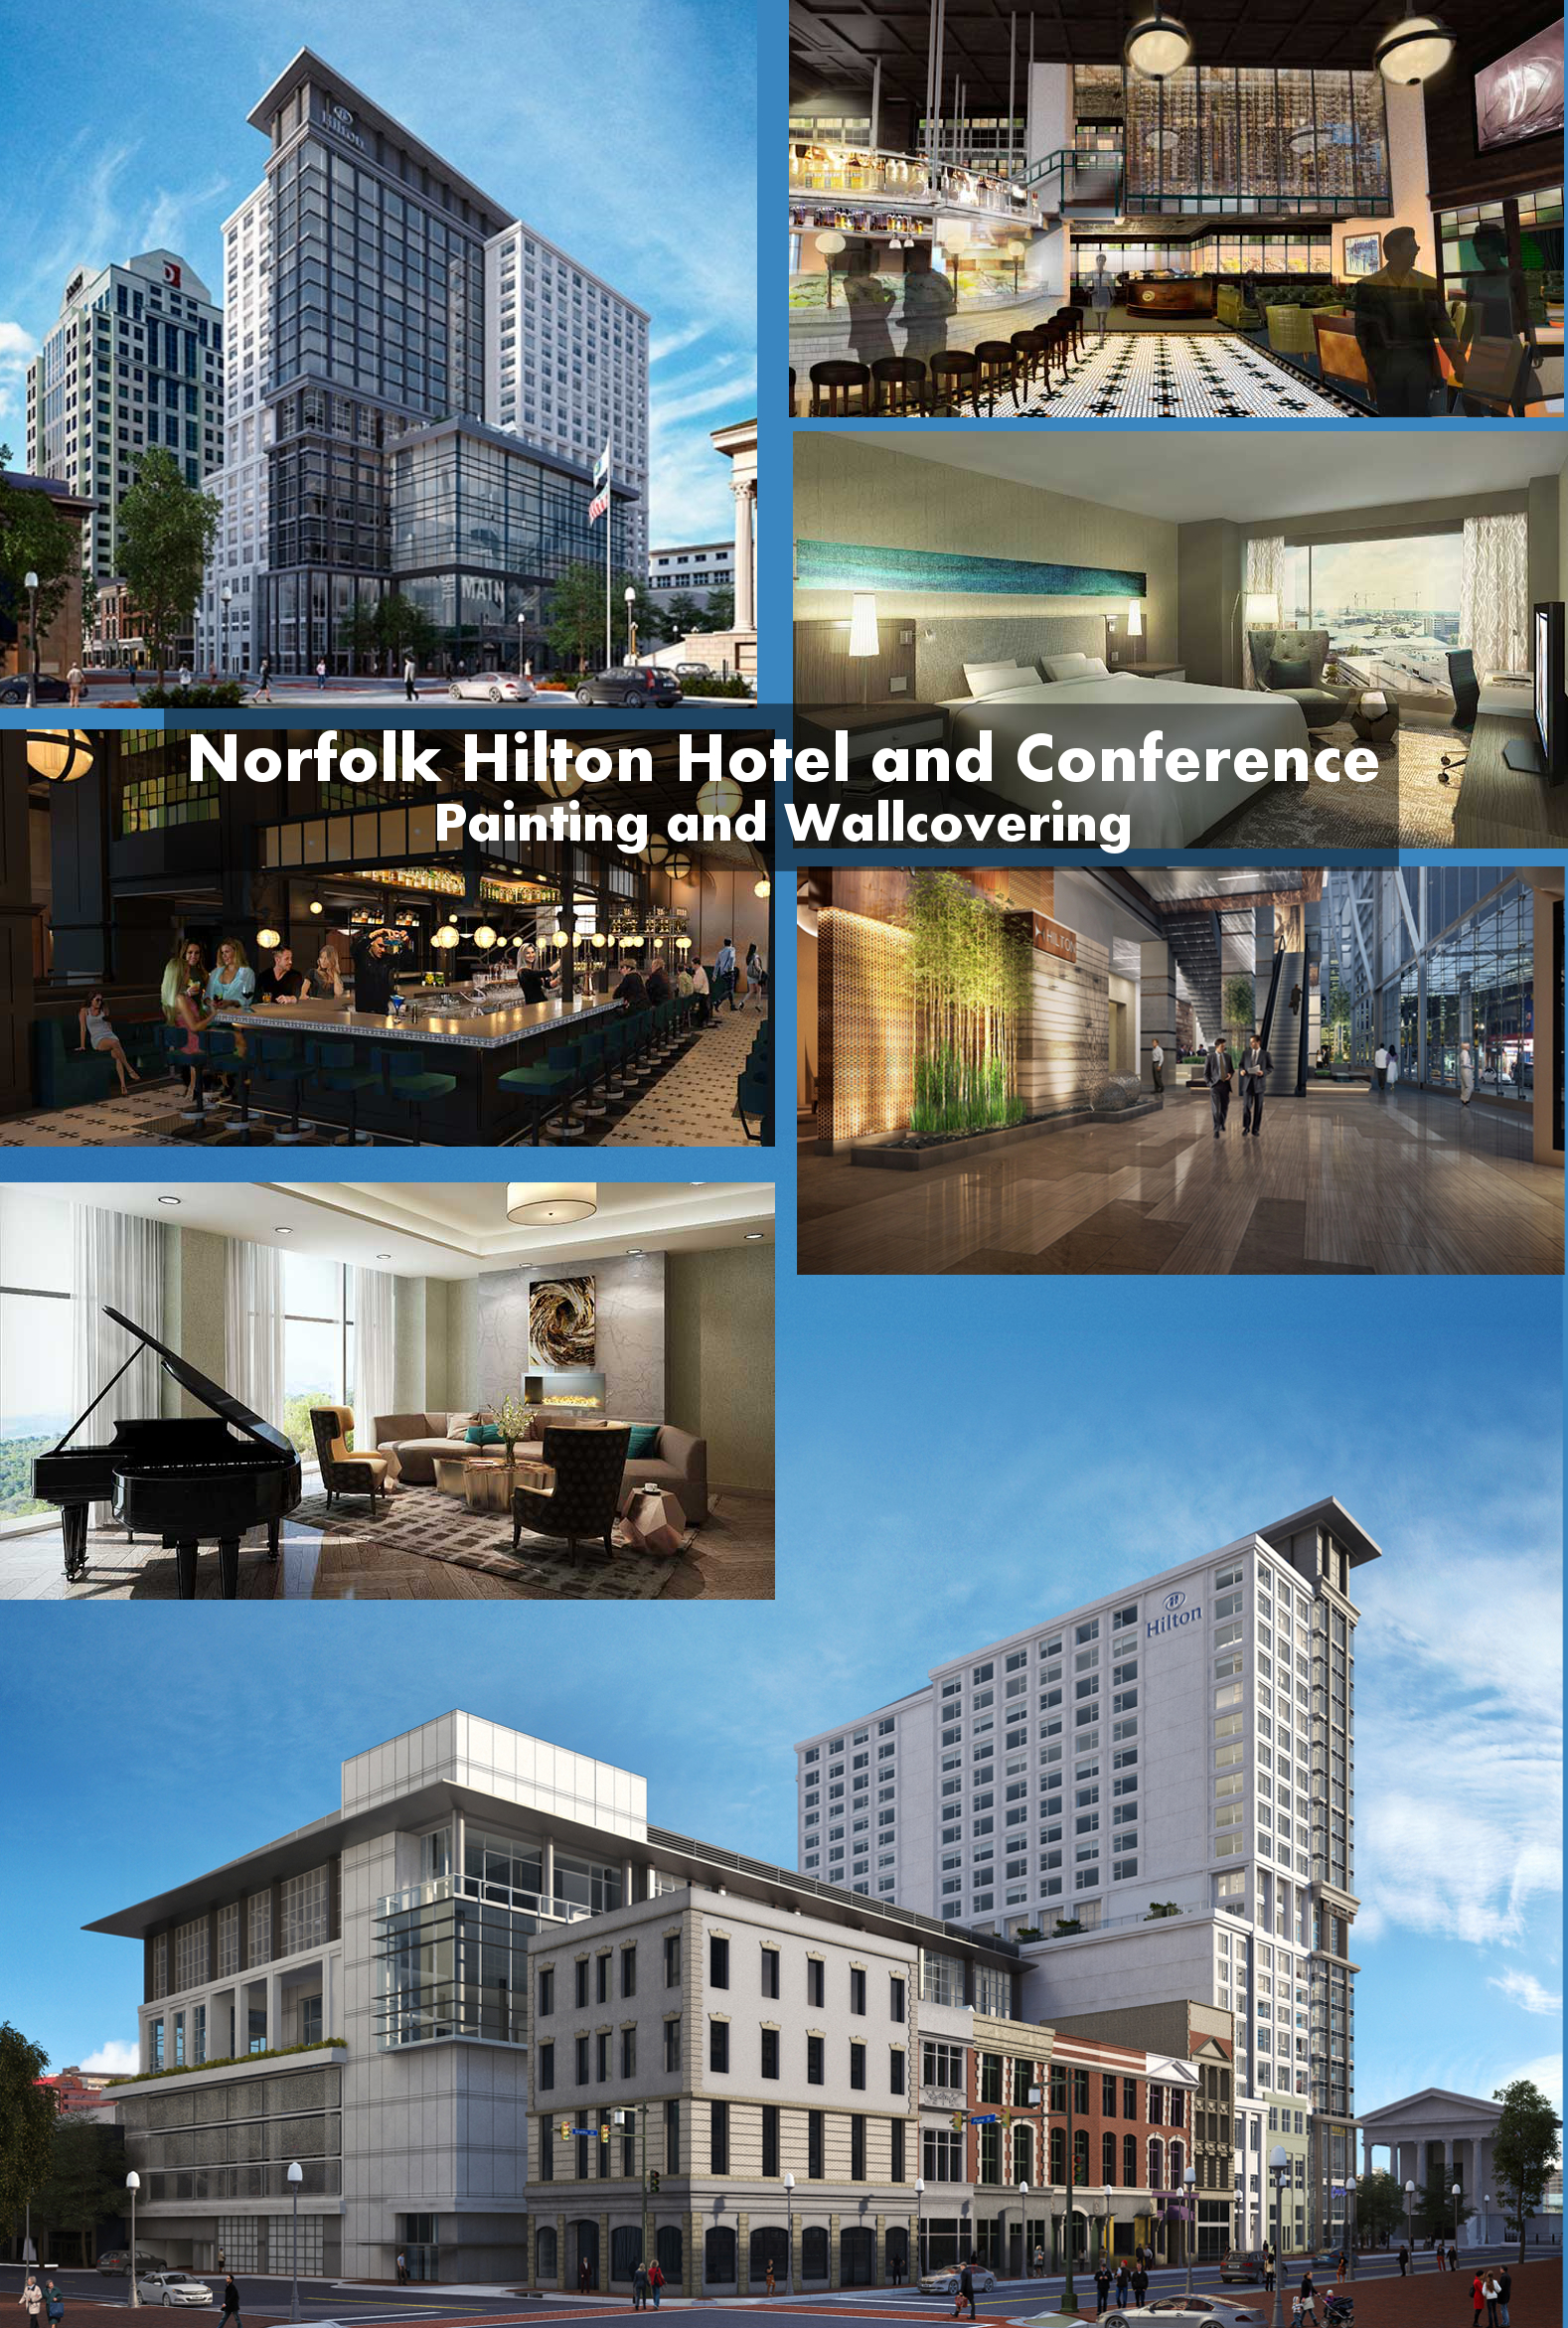 Norfolk Hilton Hotel and Conference